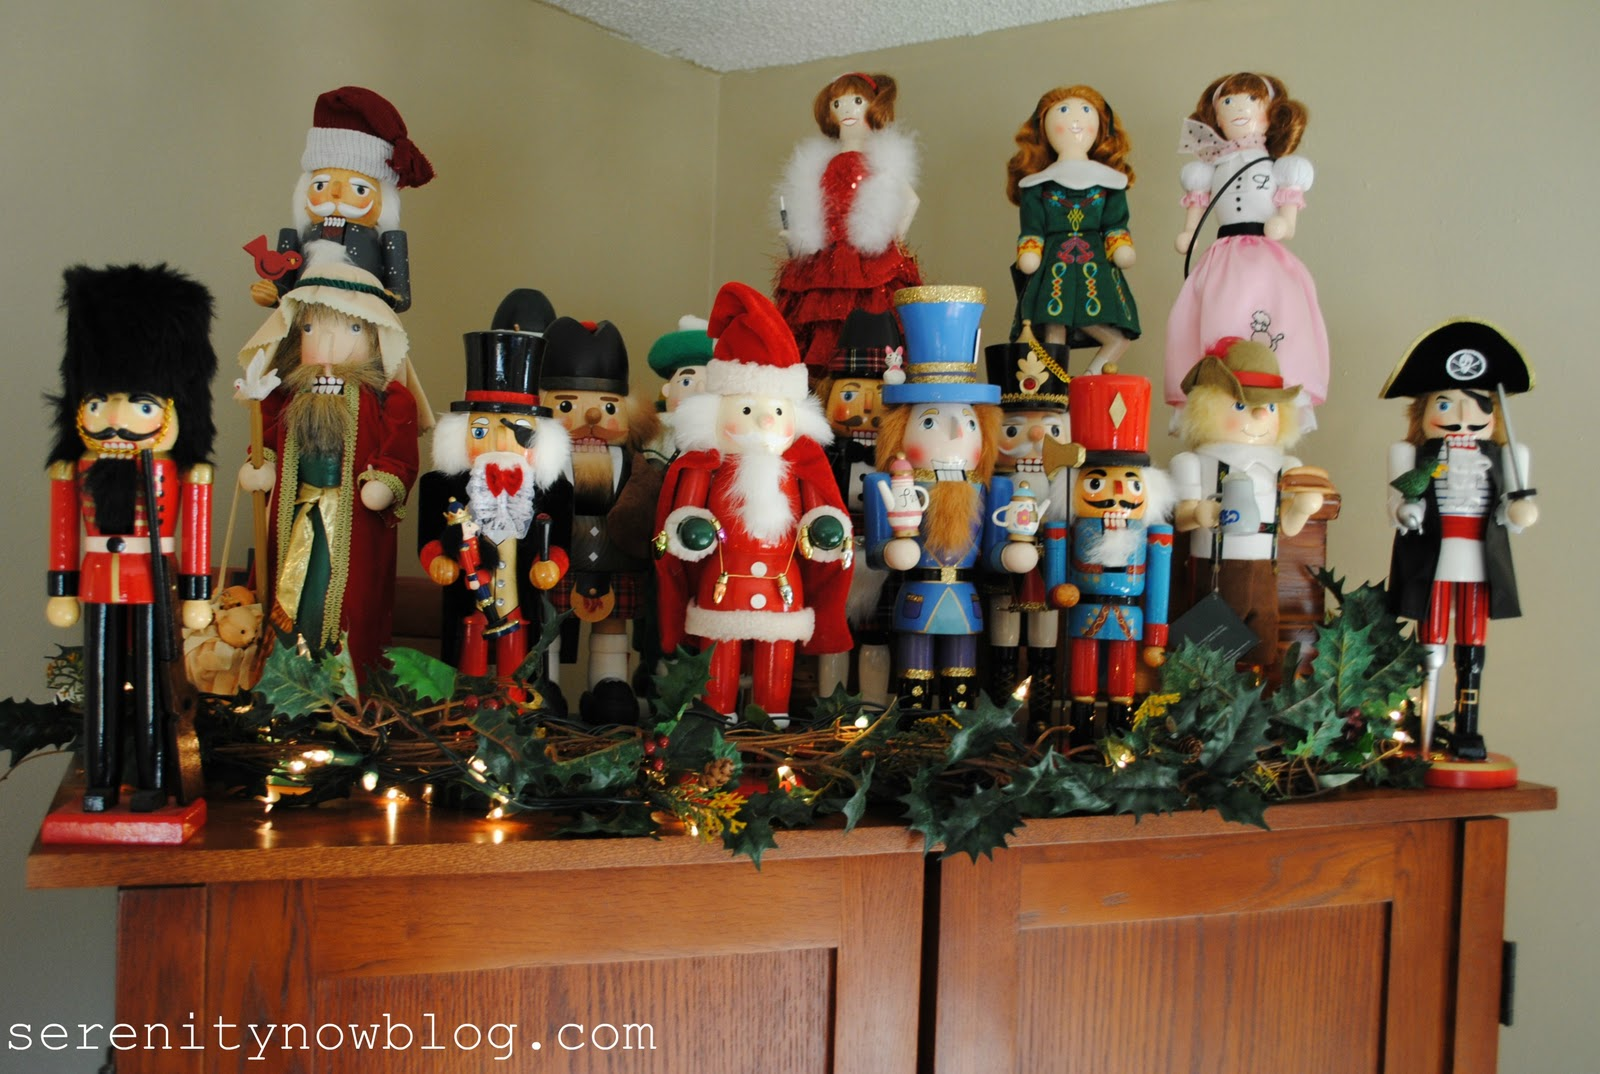 How to make a nutcracker christmas decoration - Christmas Decorations Nutcrackers Serenity Now Blog 2 E39b47d9d29c4ea72f0e794520d88a3d